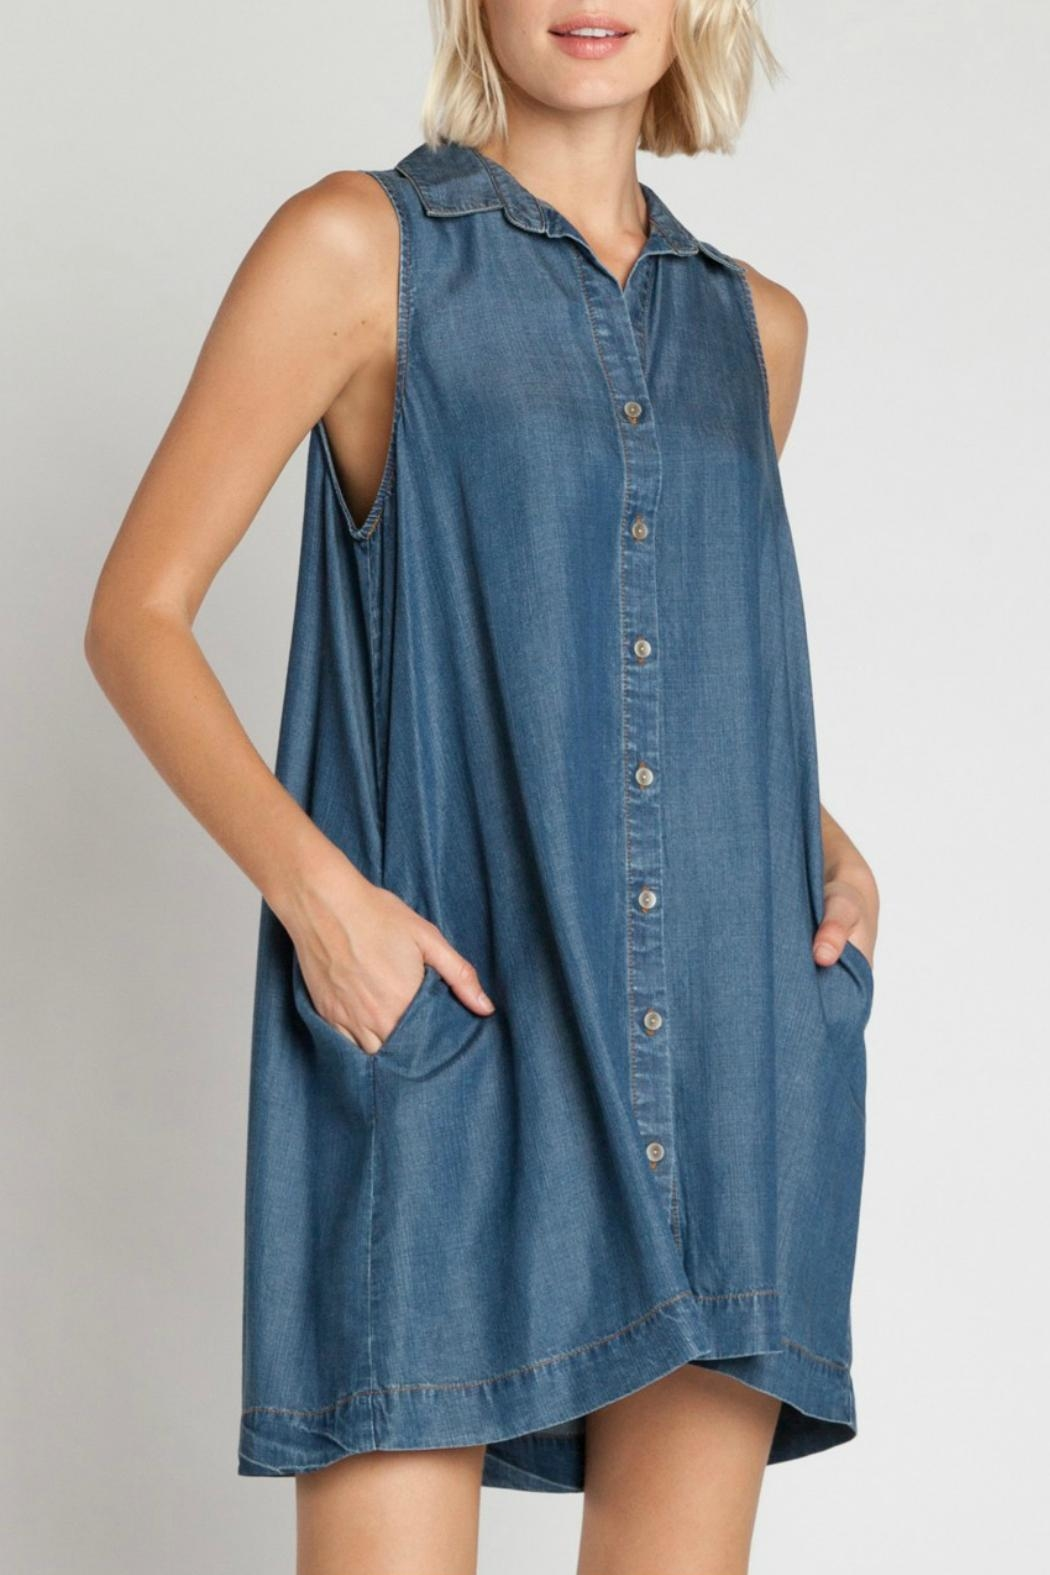 Velvet Heart Zelida Denim Dress - Main Image